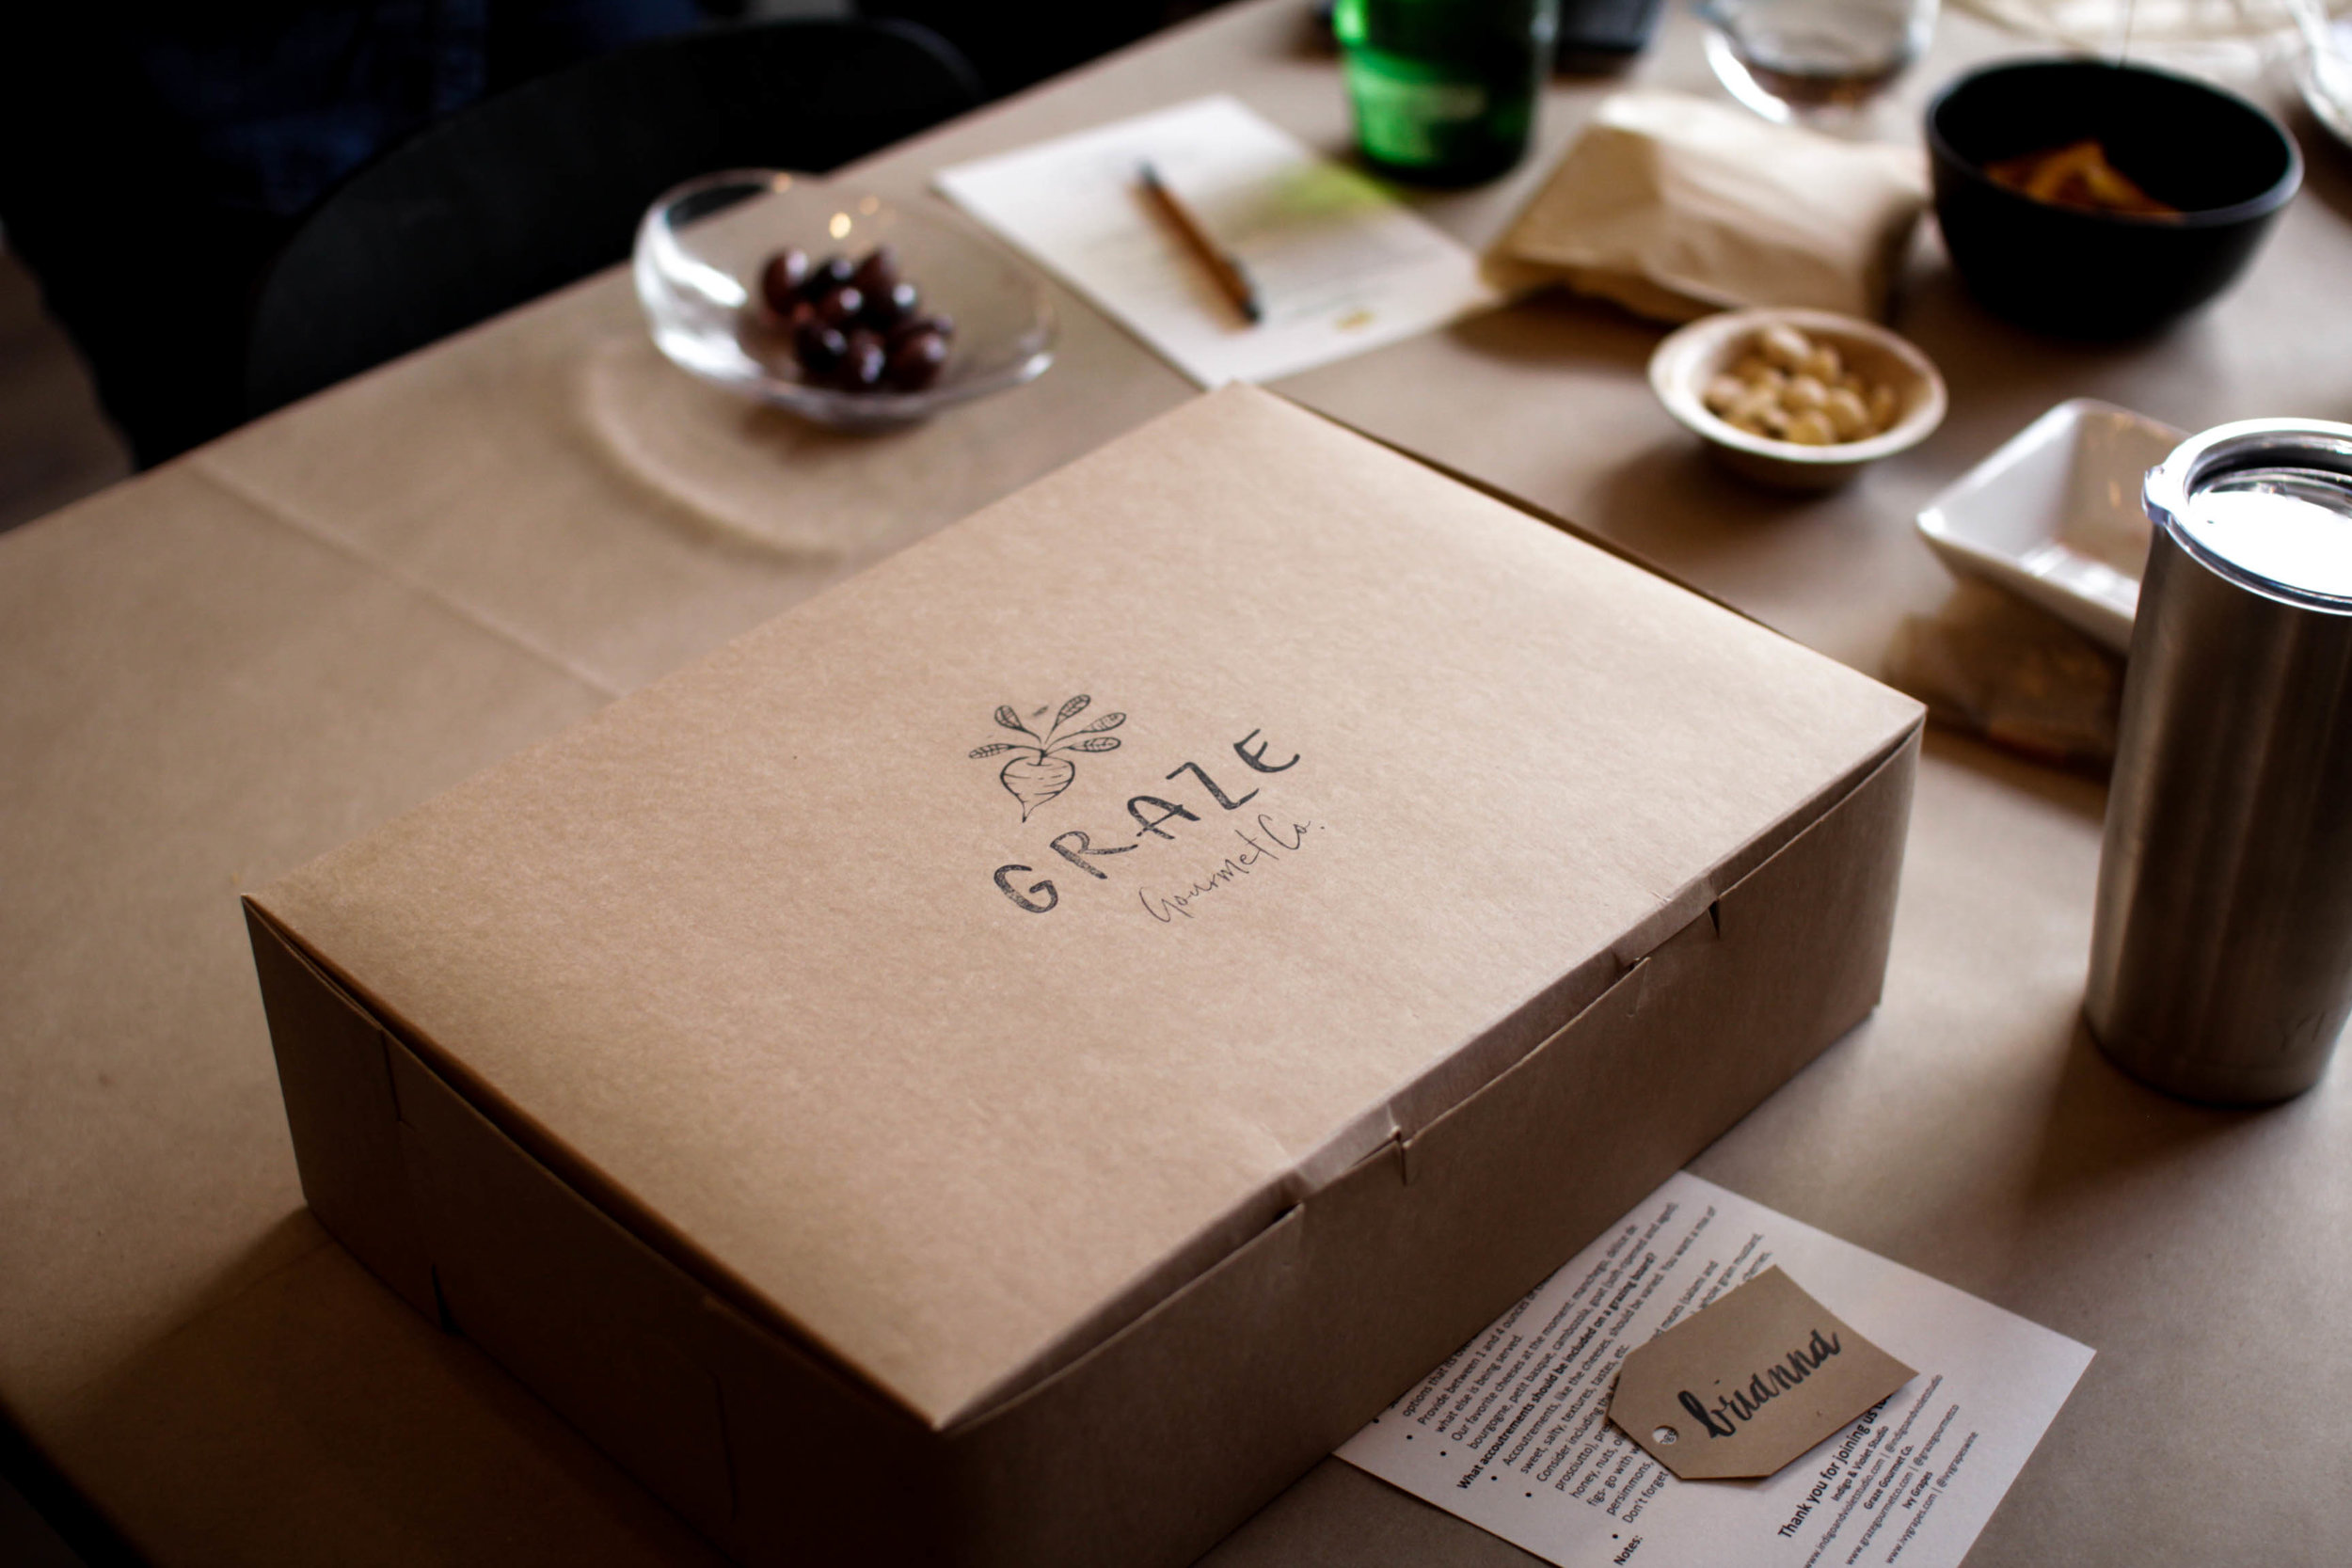 Graze Gourmet, a Chicago based charcuterie board delivery service